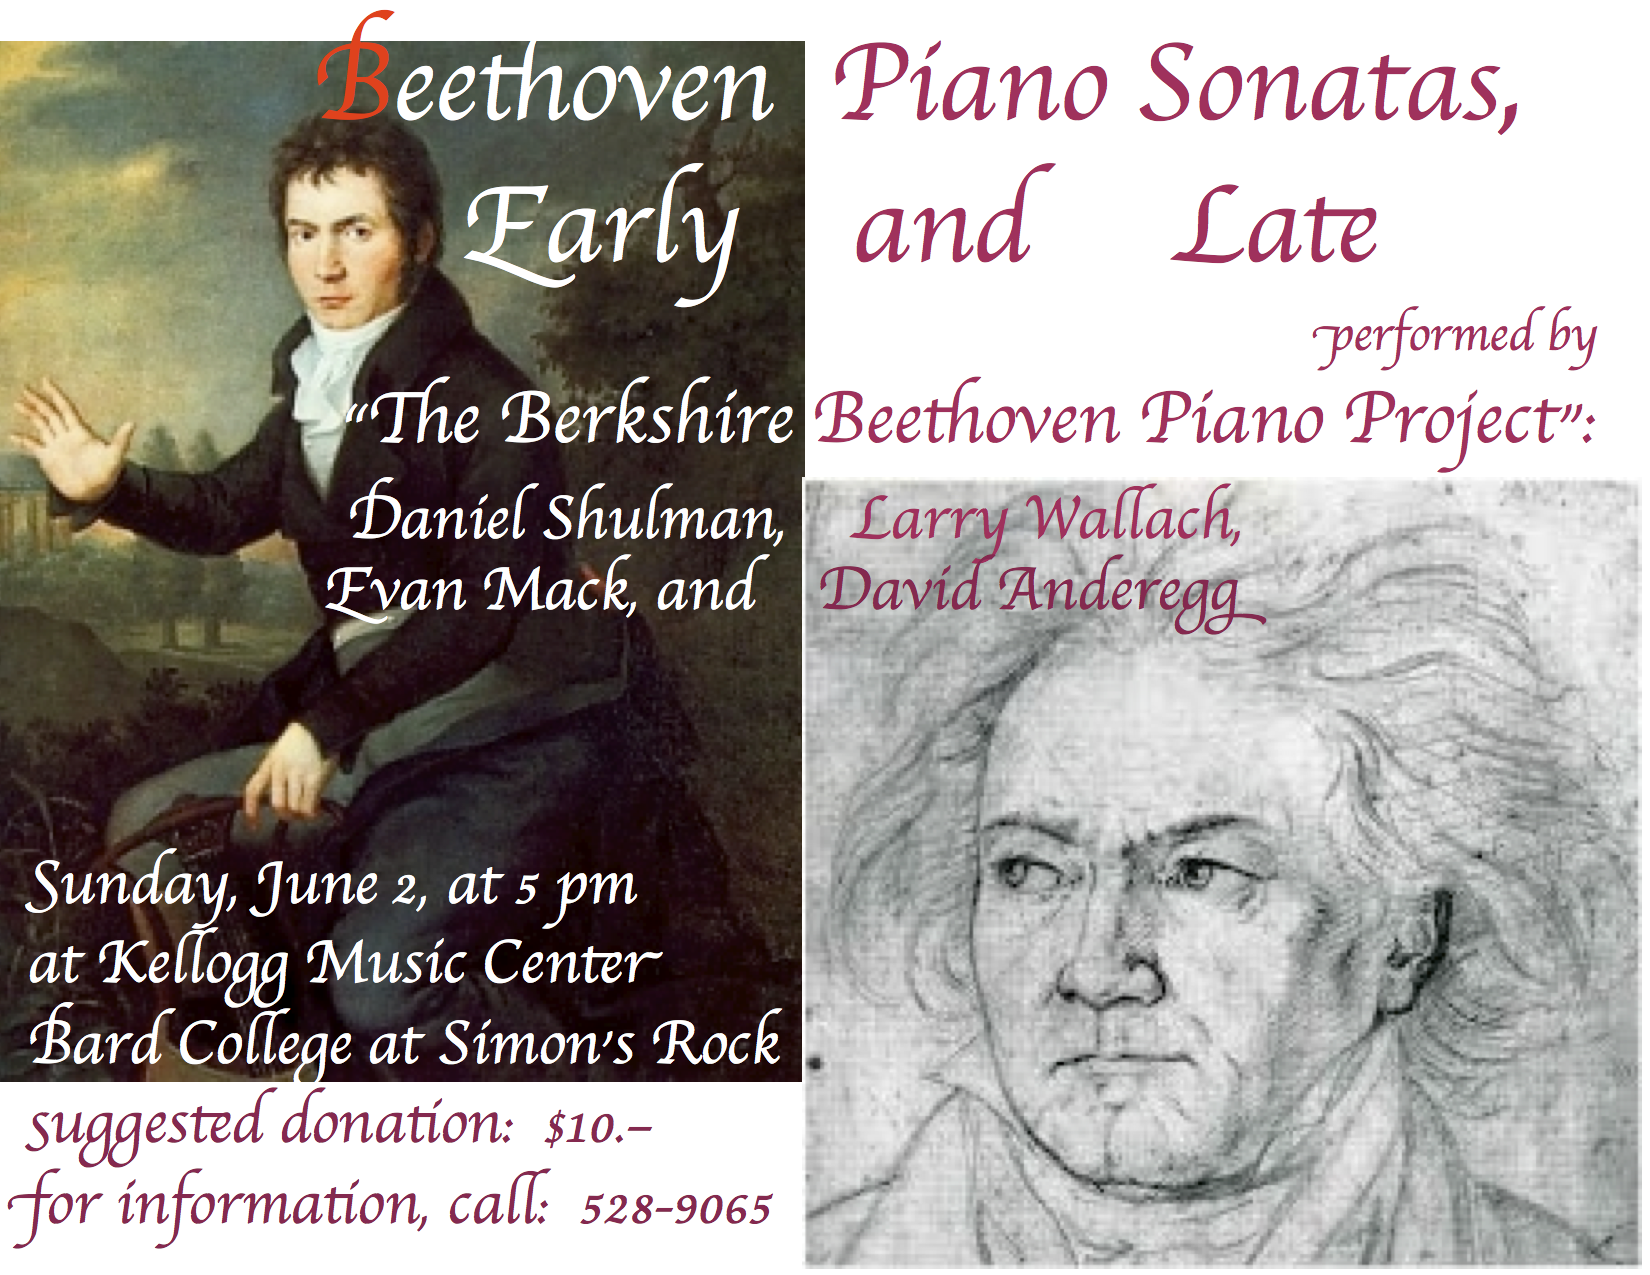 The Berkshire Beethoven Piano Project